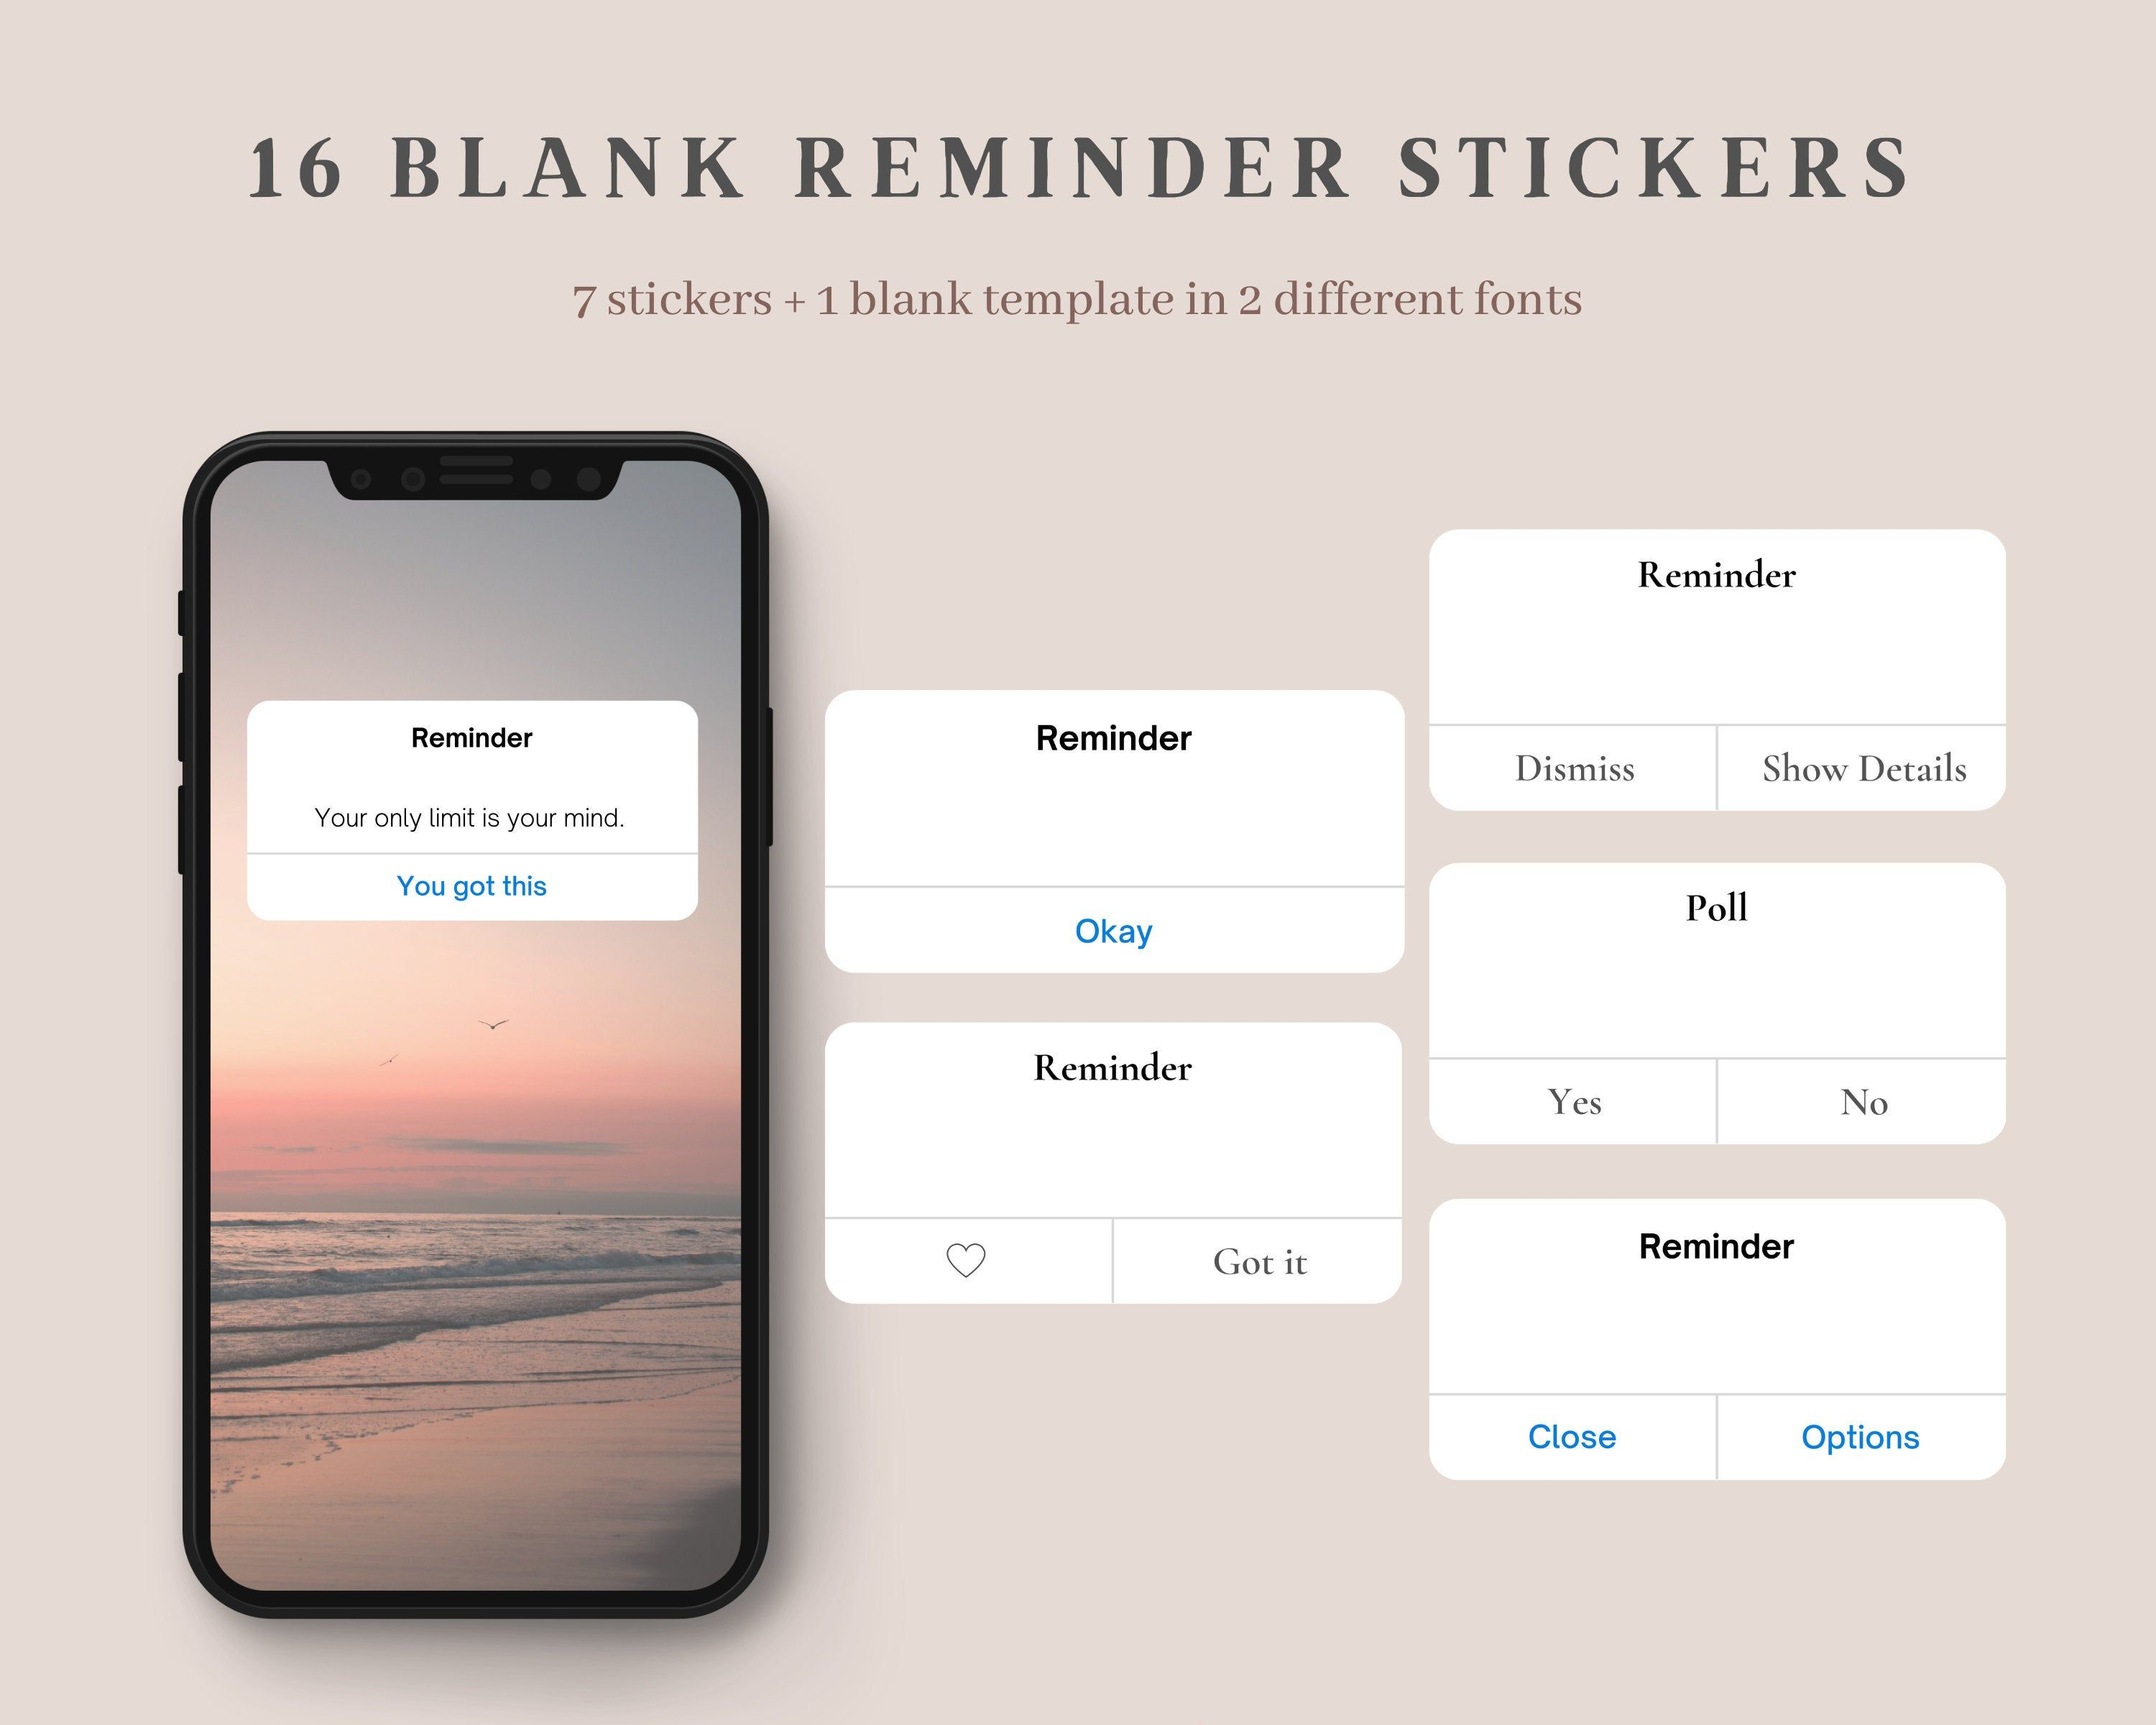 16 Instagram Story Stickers Blank Reminder Stickers Iphone Reminders Transparent Background Stickers Engagement Booster Png Stickers Iphone Reminders Reminder Stickers Instagram Story